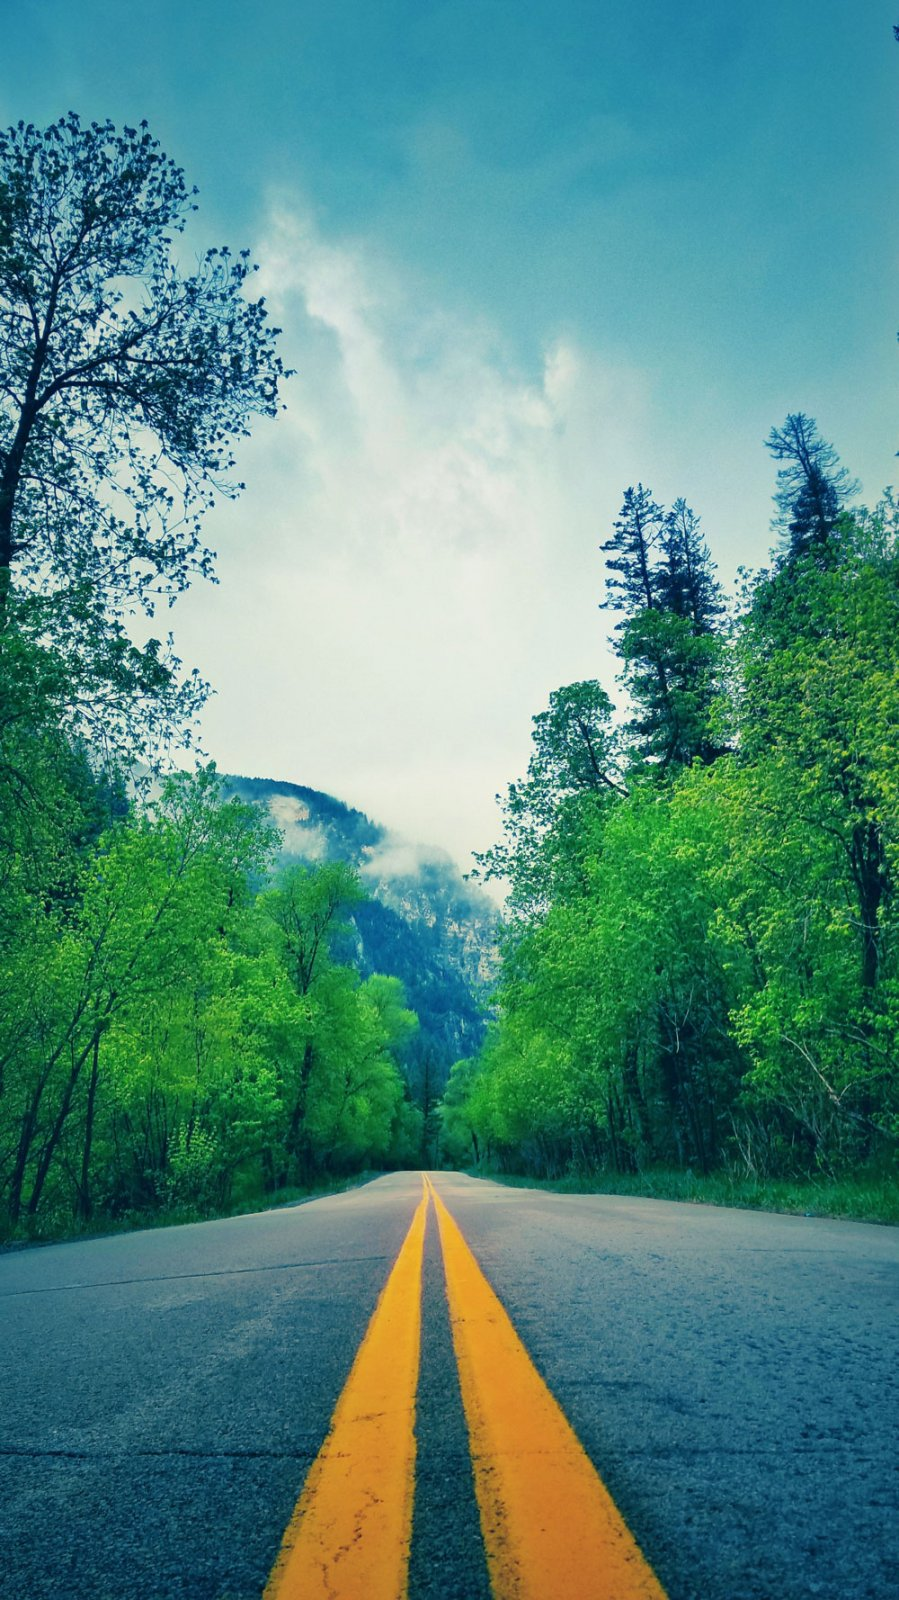 yellow road lines passing through green foliage on a cloudy day